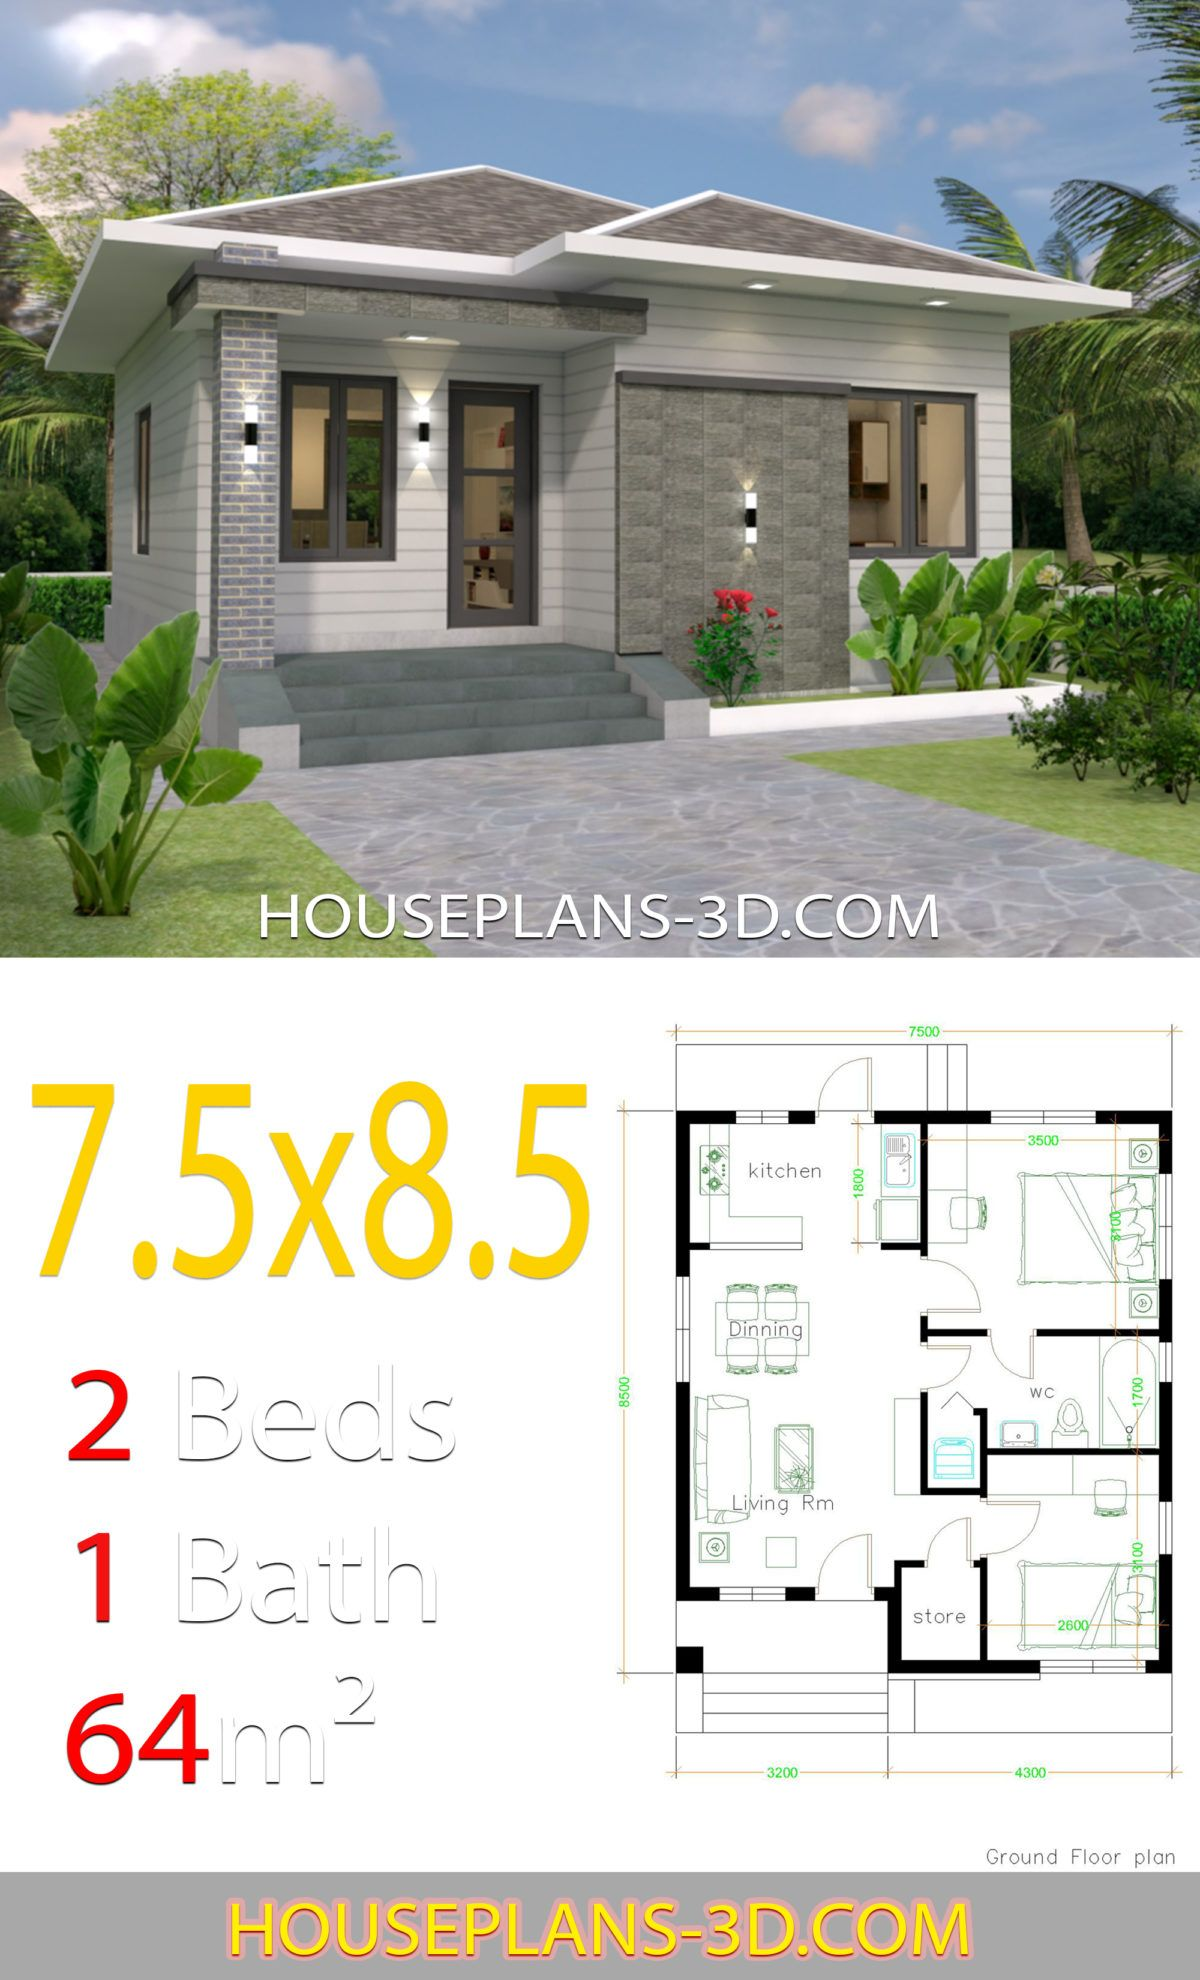 House design 7.5x8.5 with 2 bedrooms House Plans 3D in